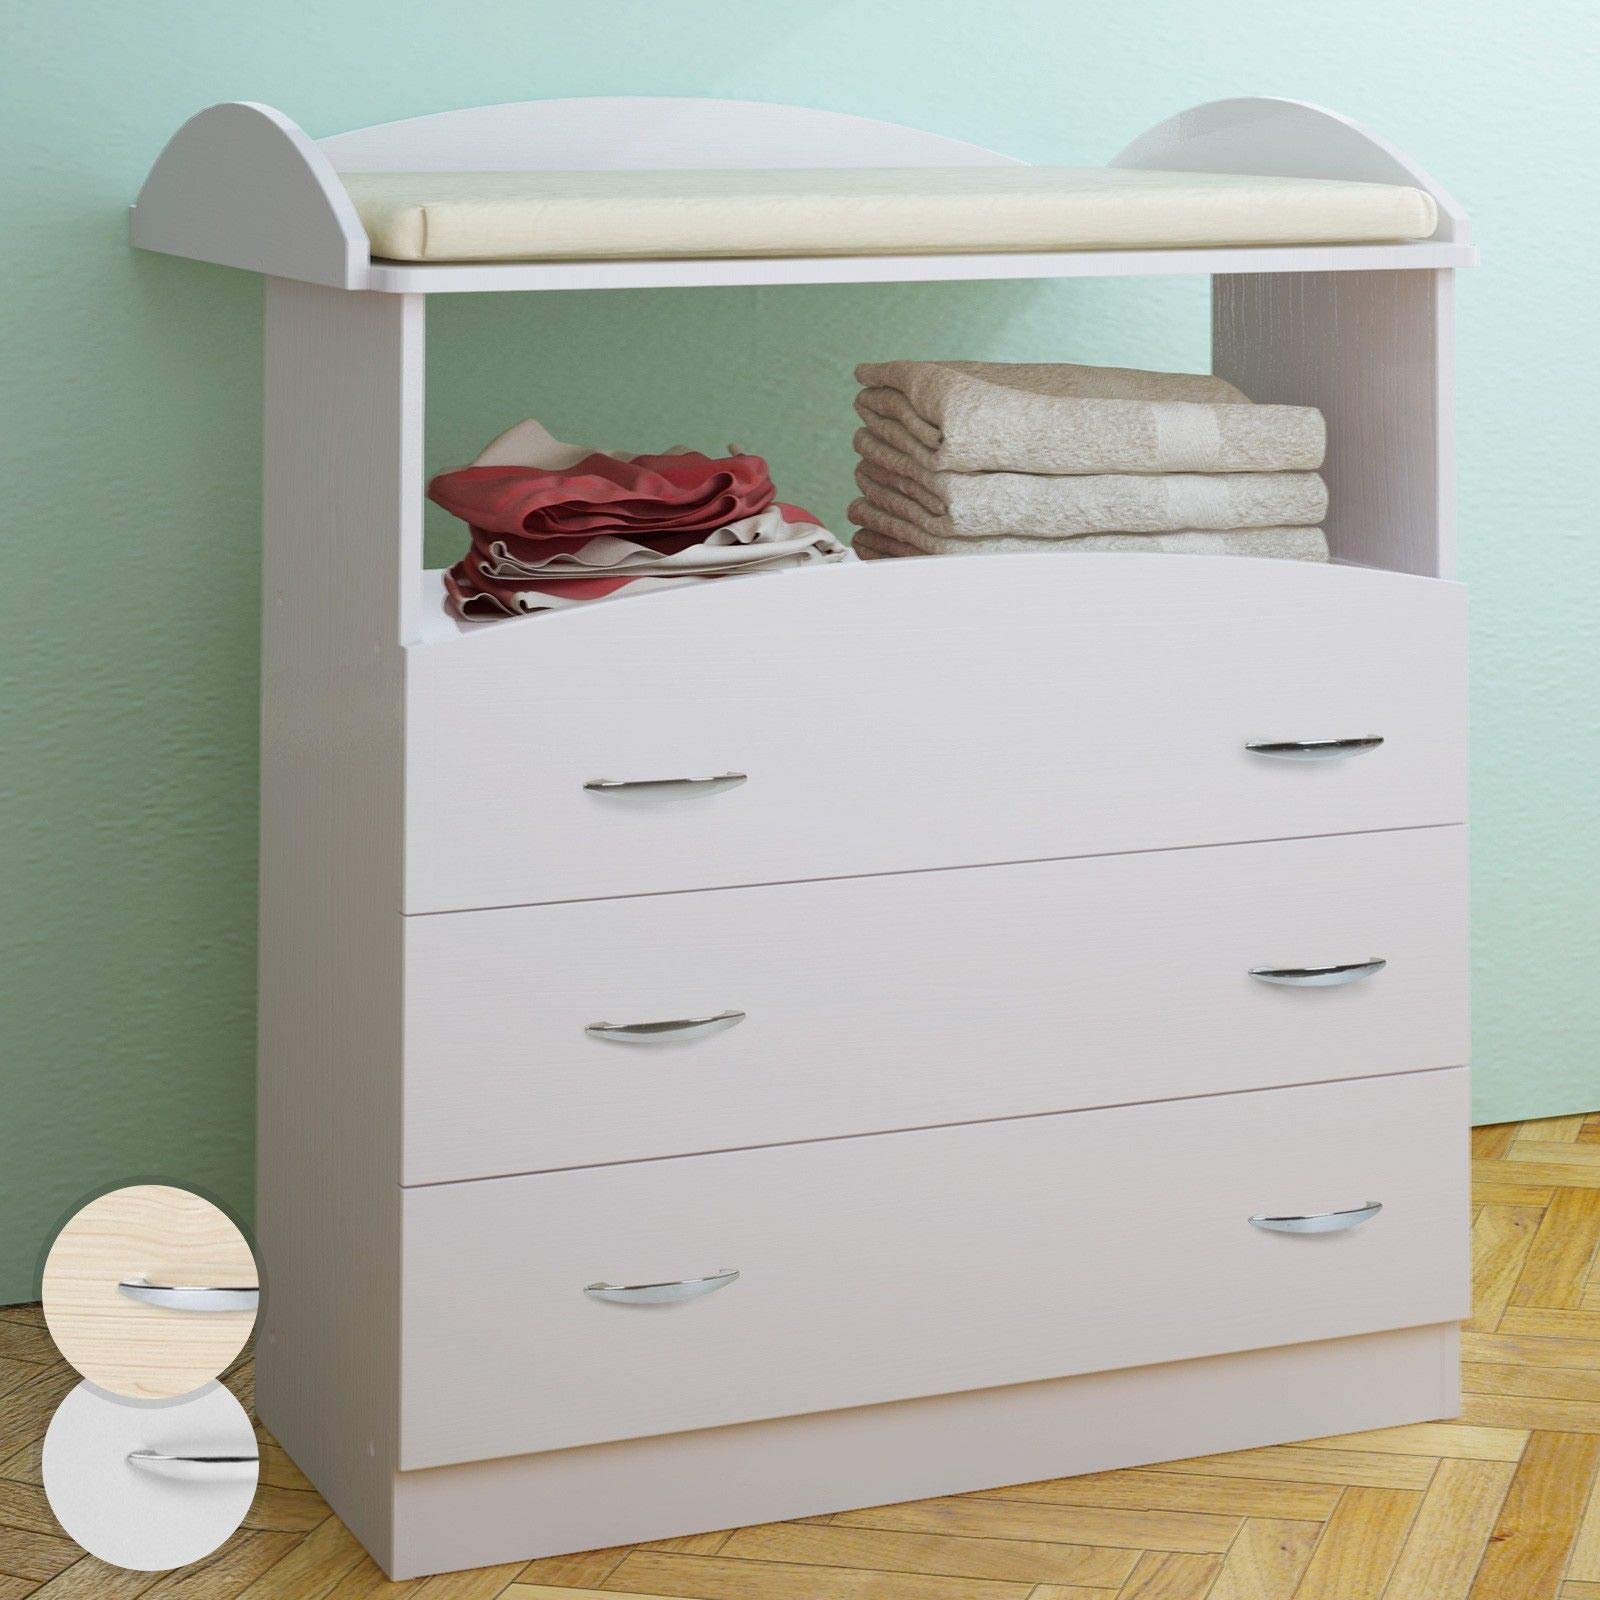 Baby changing table unit 3 drawers chest storage nursery furniture 85 x 71 x 96 cm